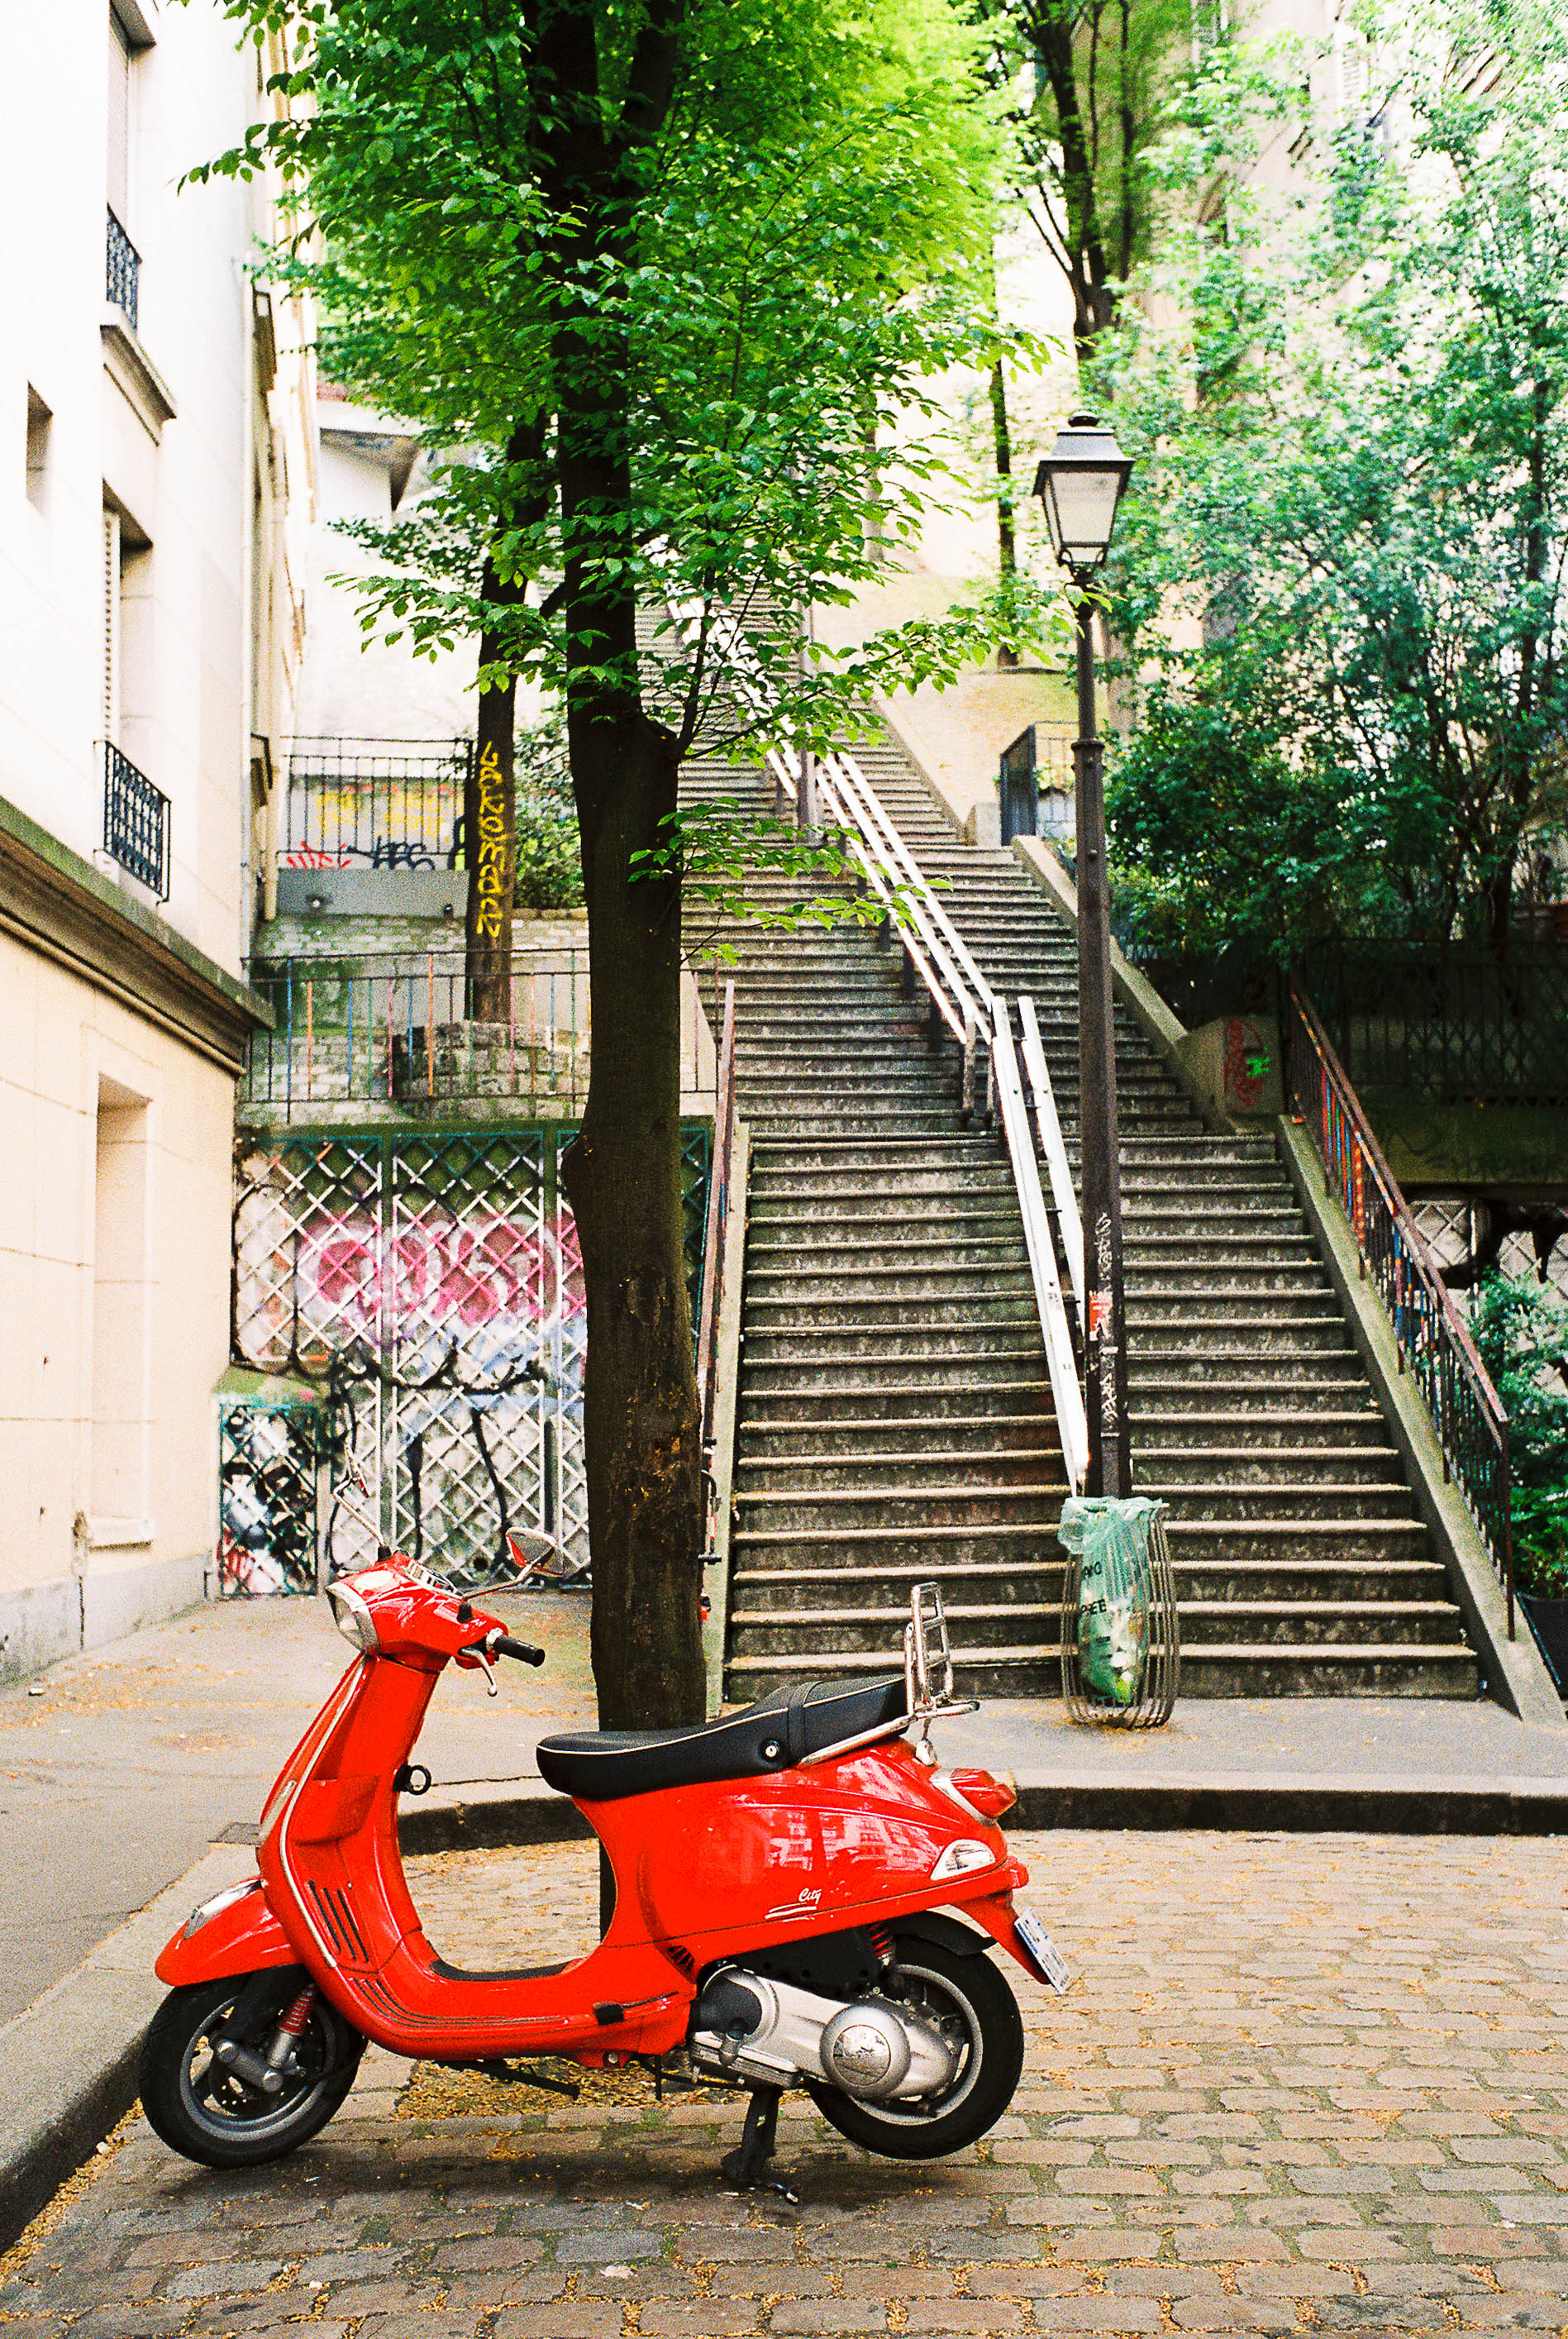 When I live in Europe, I will have a candy apple red moped.